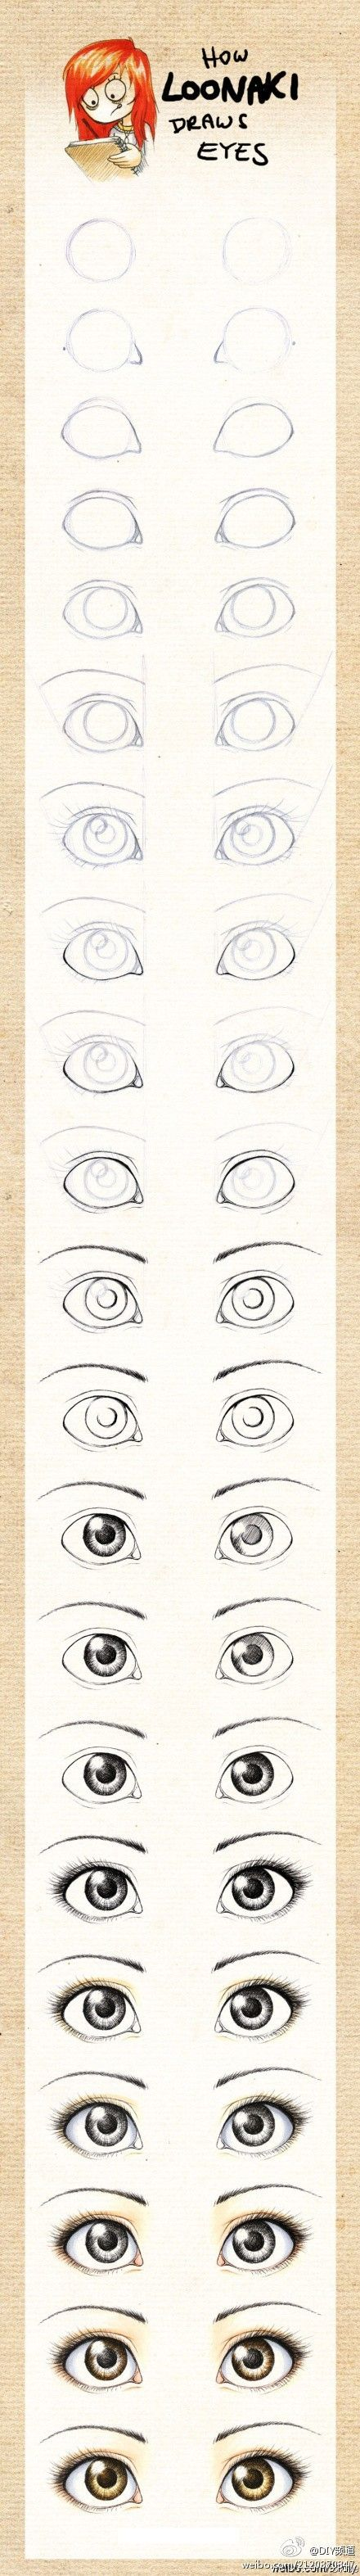 how to draw eyes by regina